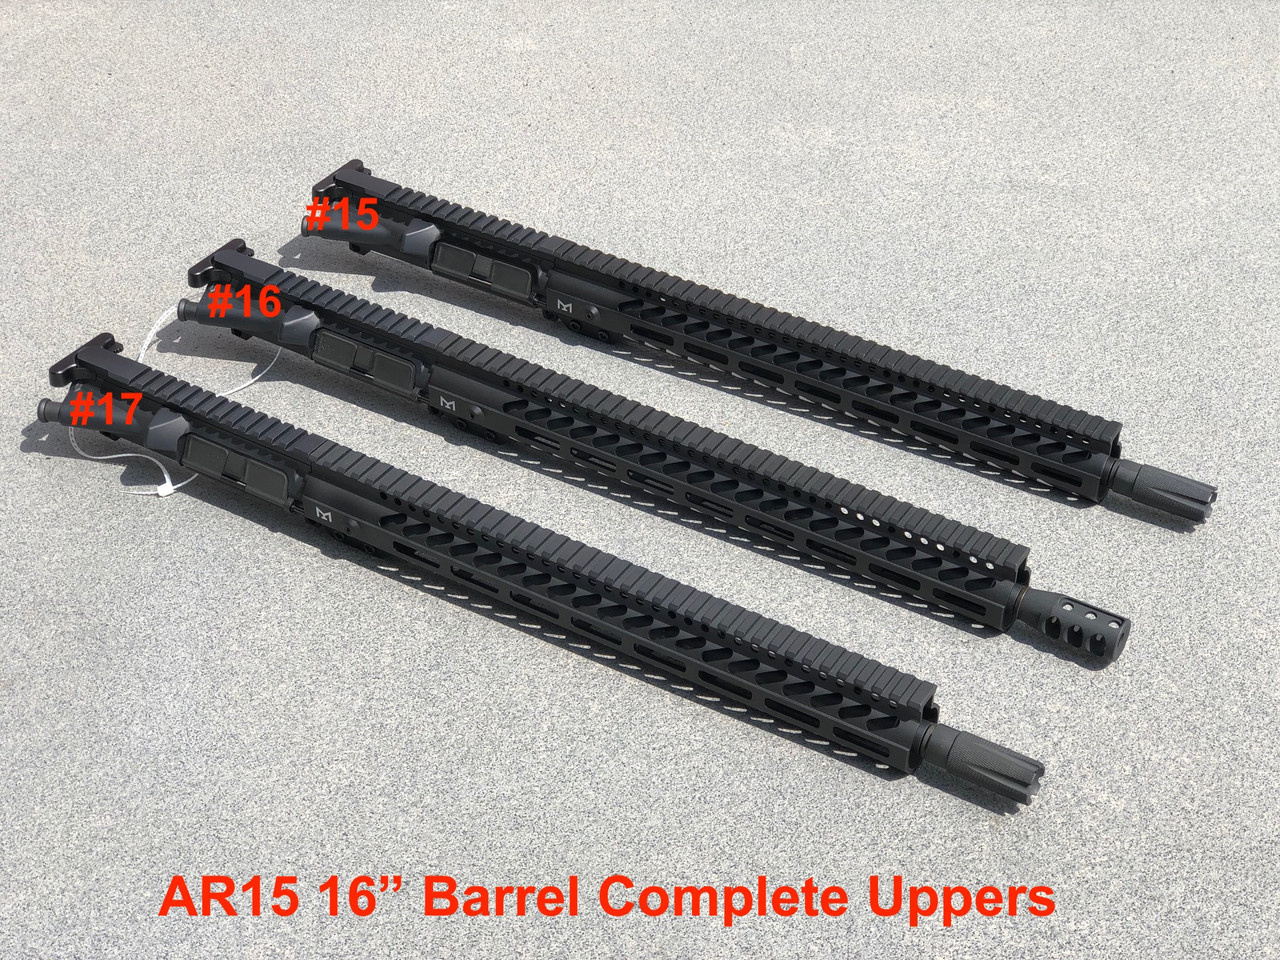 MDX Arms COVIDRIFLE Complete Uppers - WILL CALL ONLY